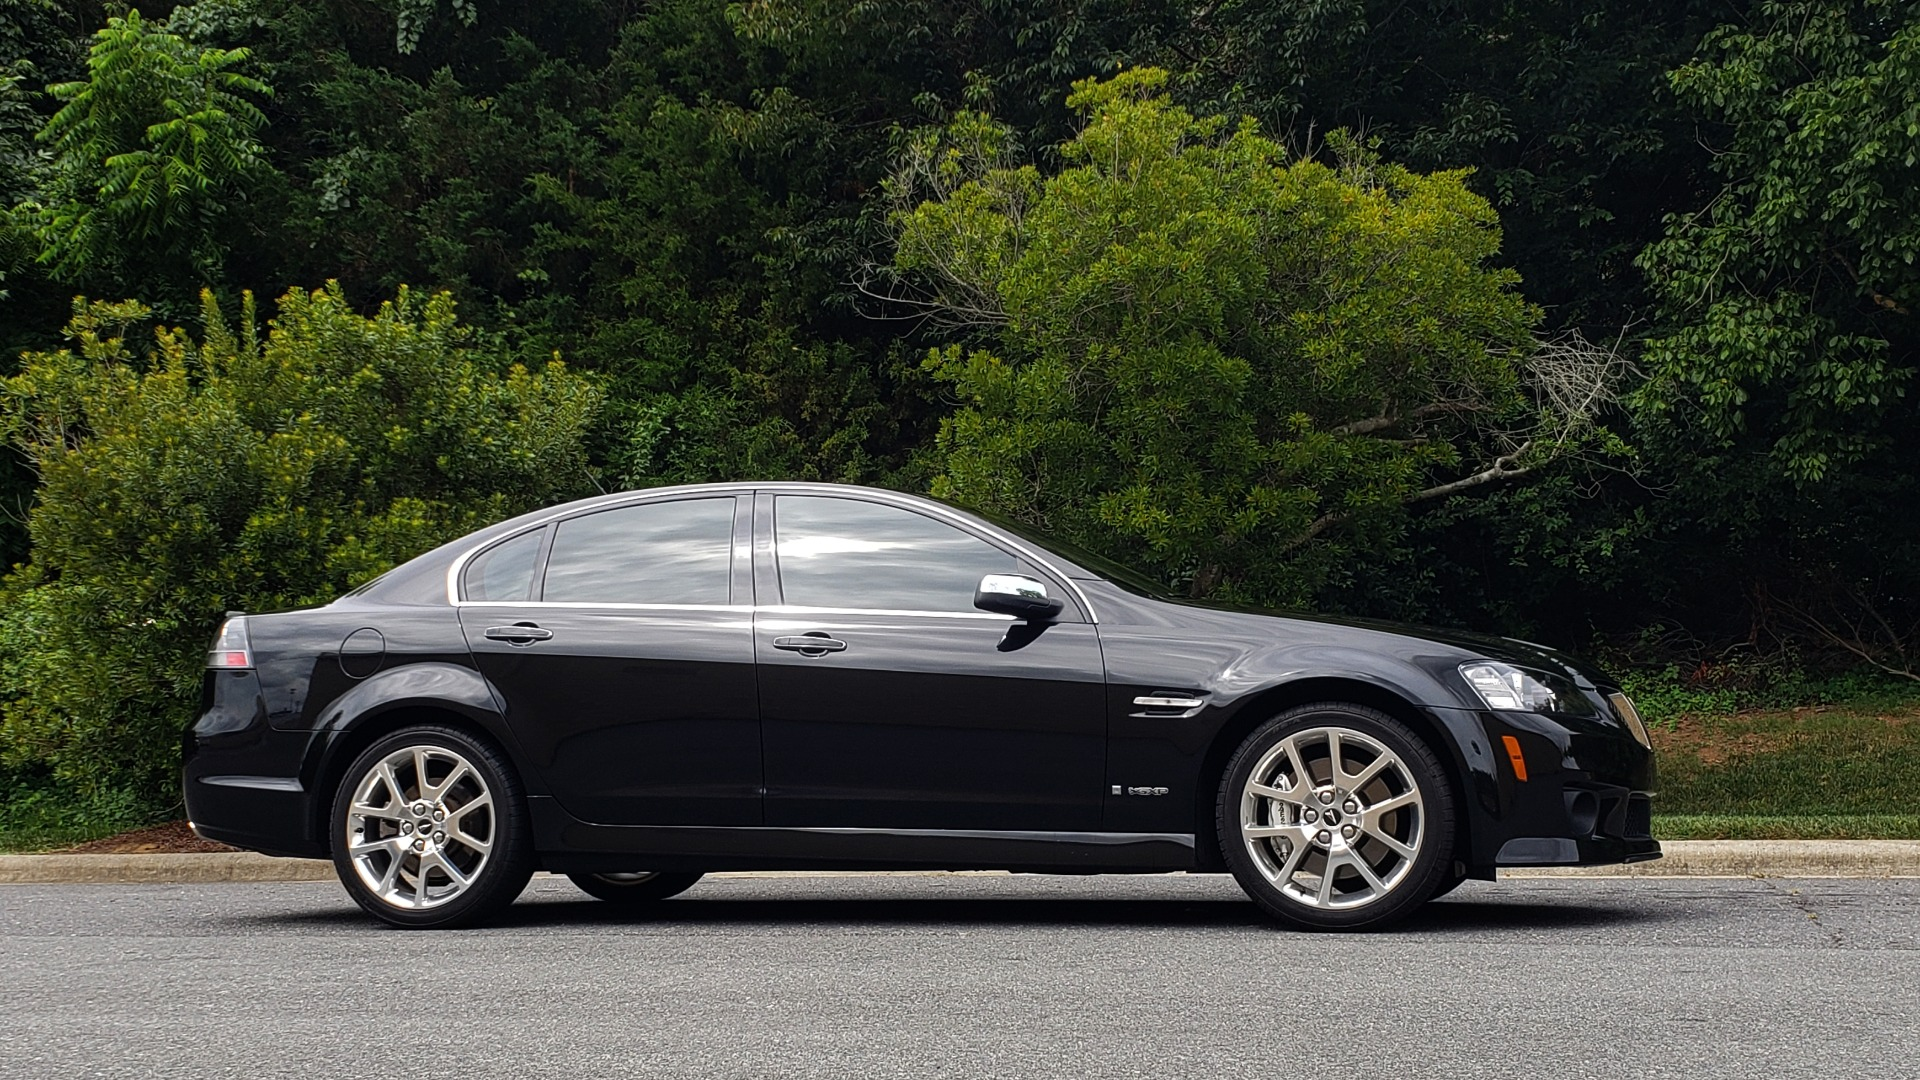 Used 2009 Pontiac G8 GXP / 6.2L LS3 V8 / 6-SPD AUTO / SUNROOF / 19IN WHEELS for sale Sold at Formula Imports in Charlotte NC 28227 9